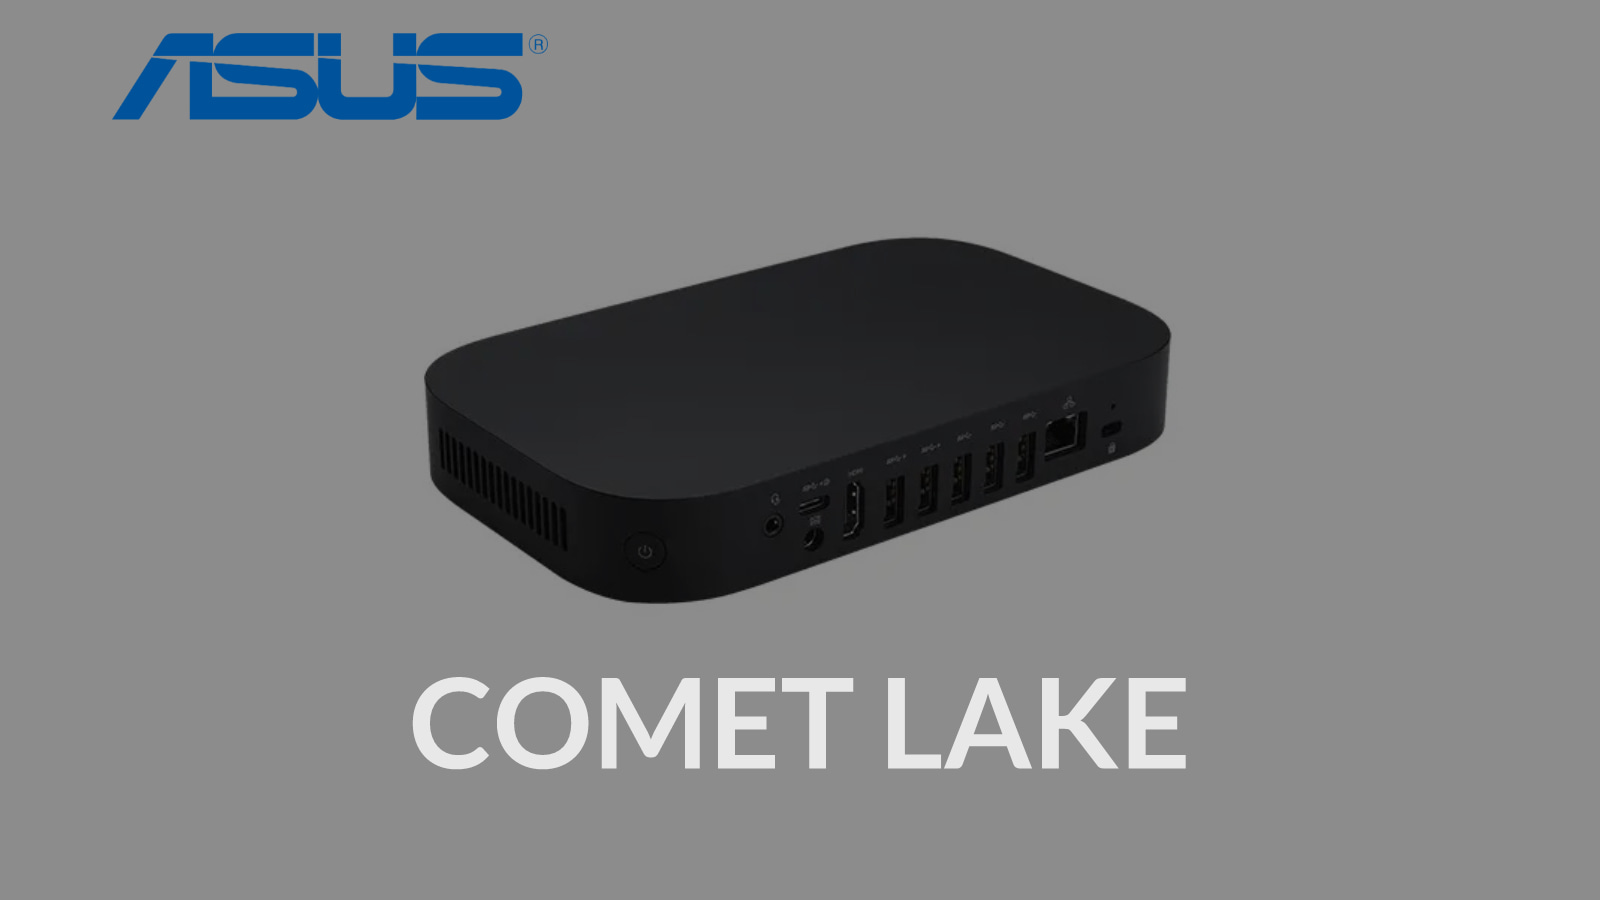 ASUS joins the fray with a new Comet Lake Chromebox